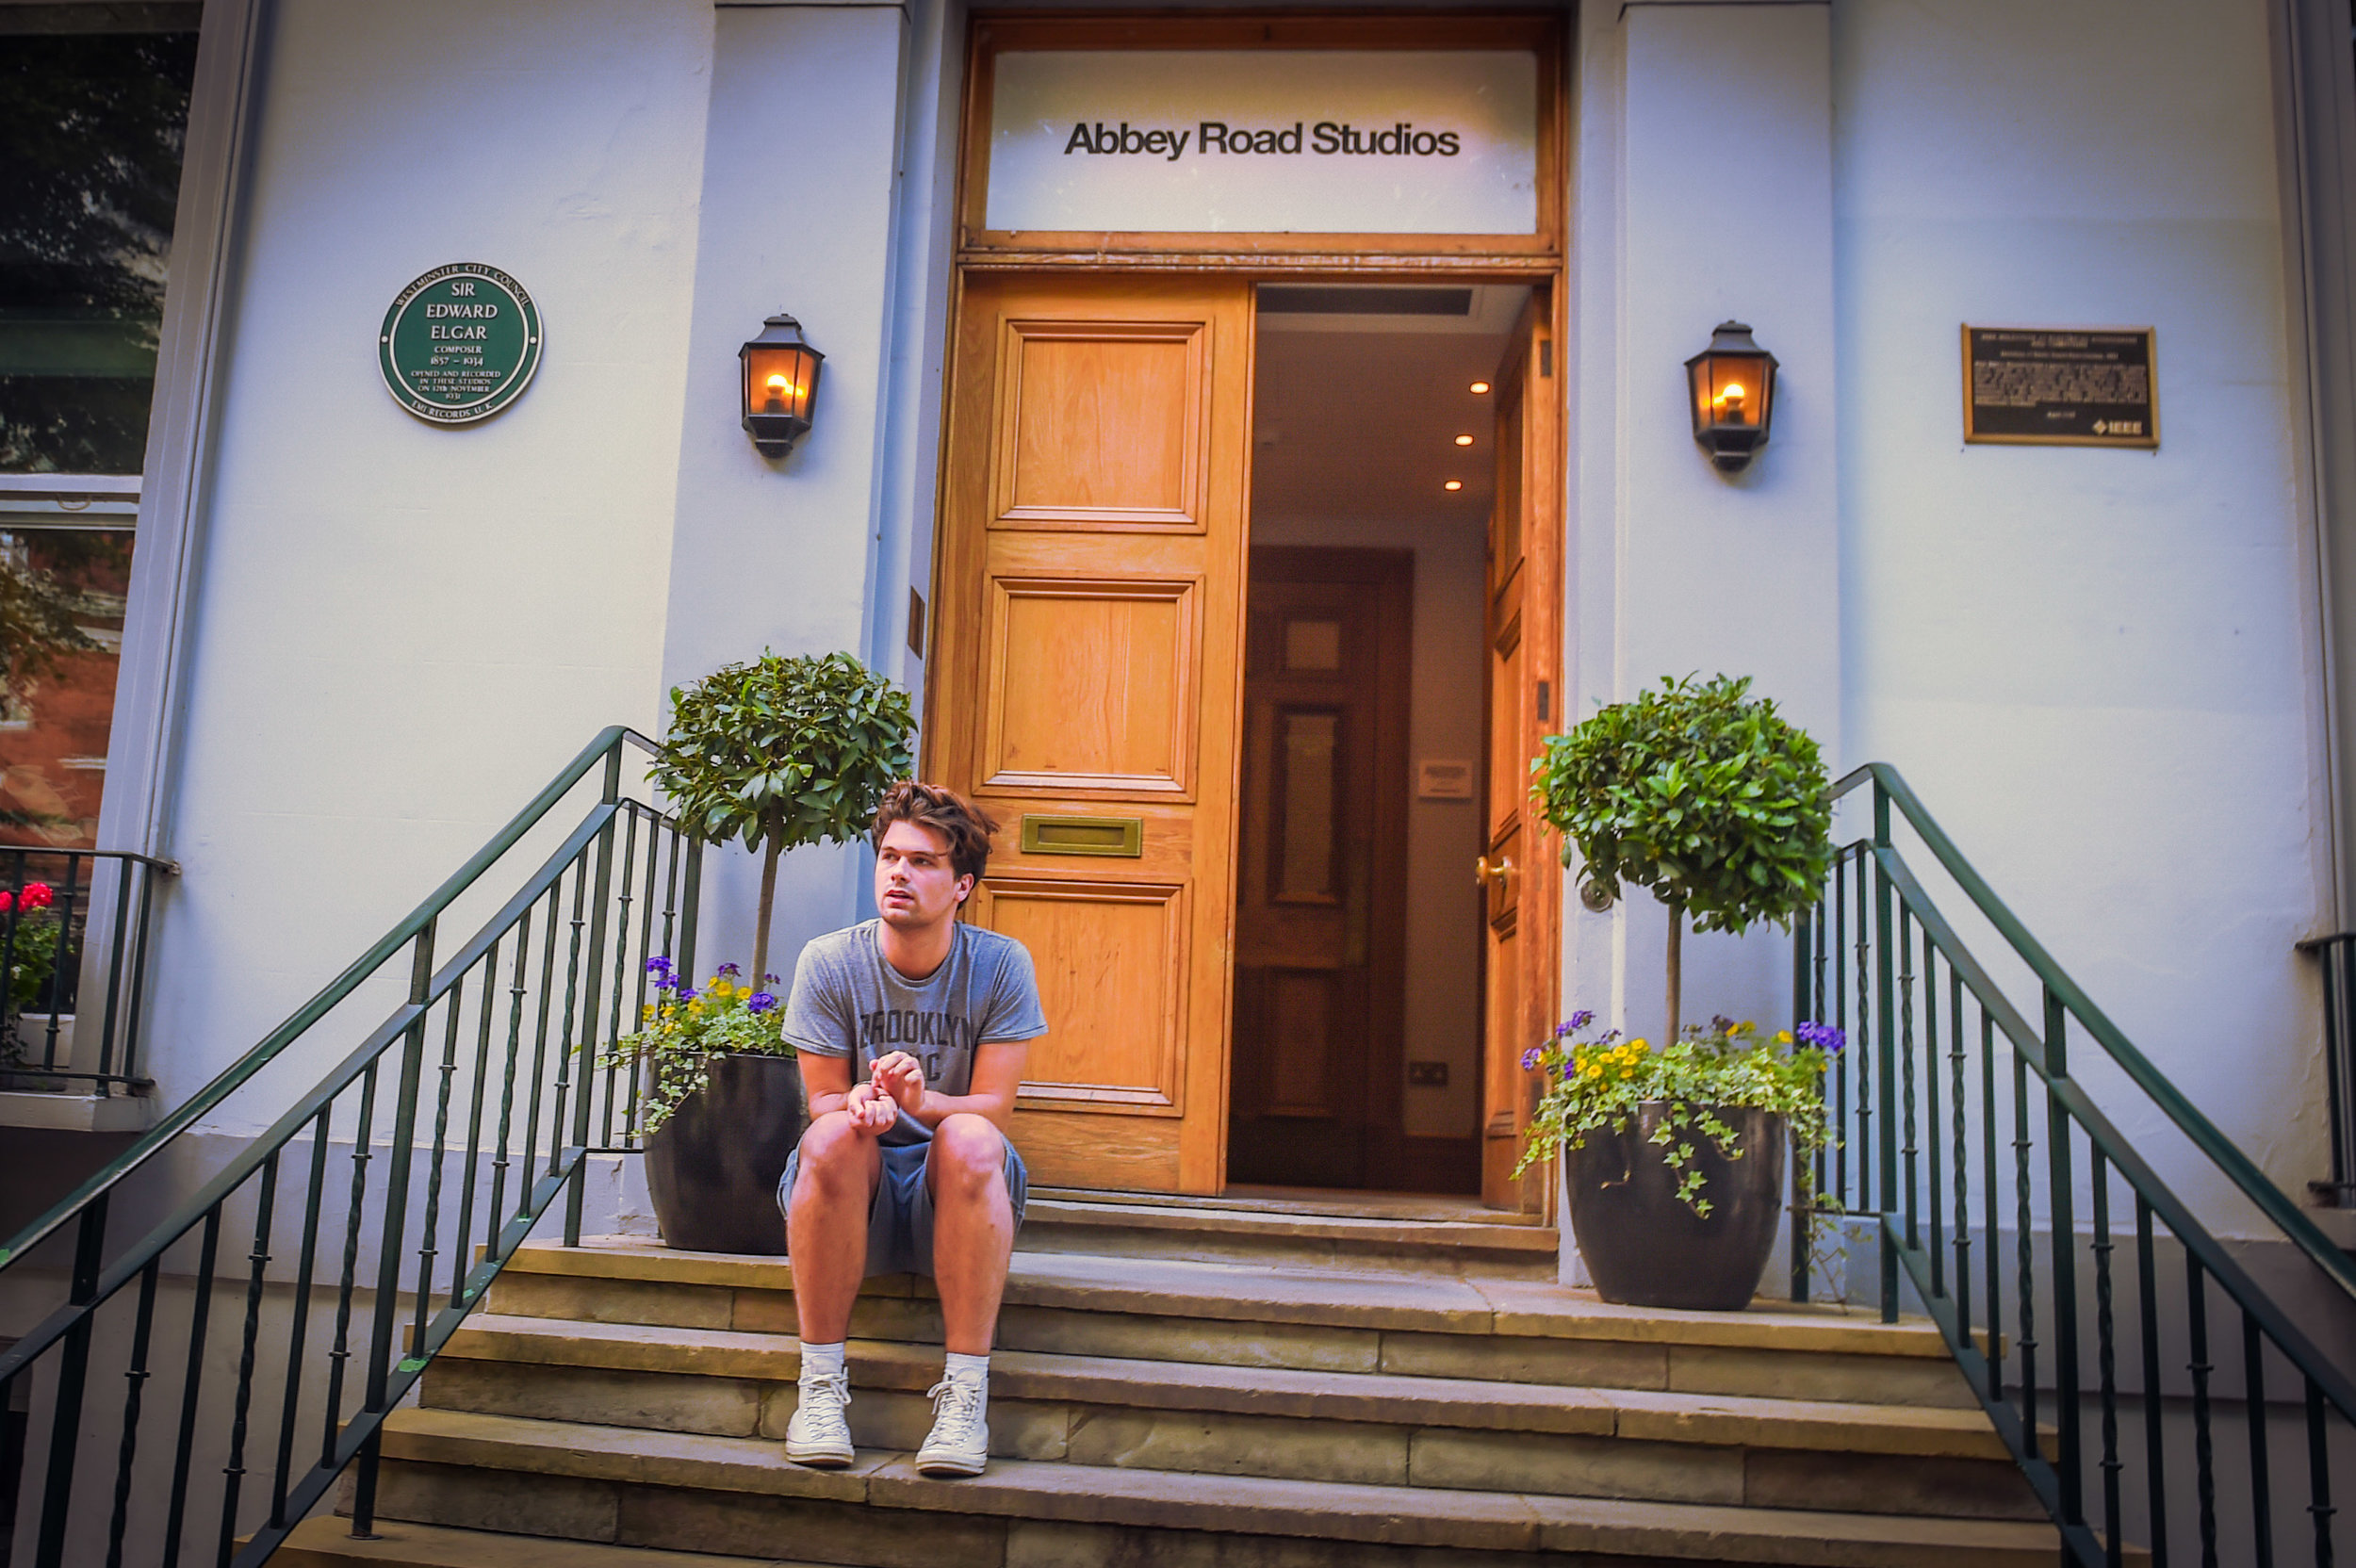 My youngest, Sam having a 5 min break on the front steps of the studio..